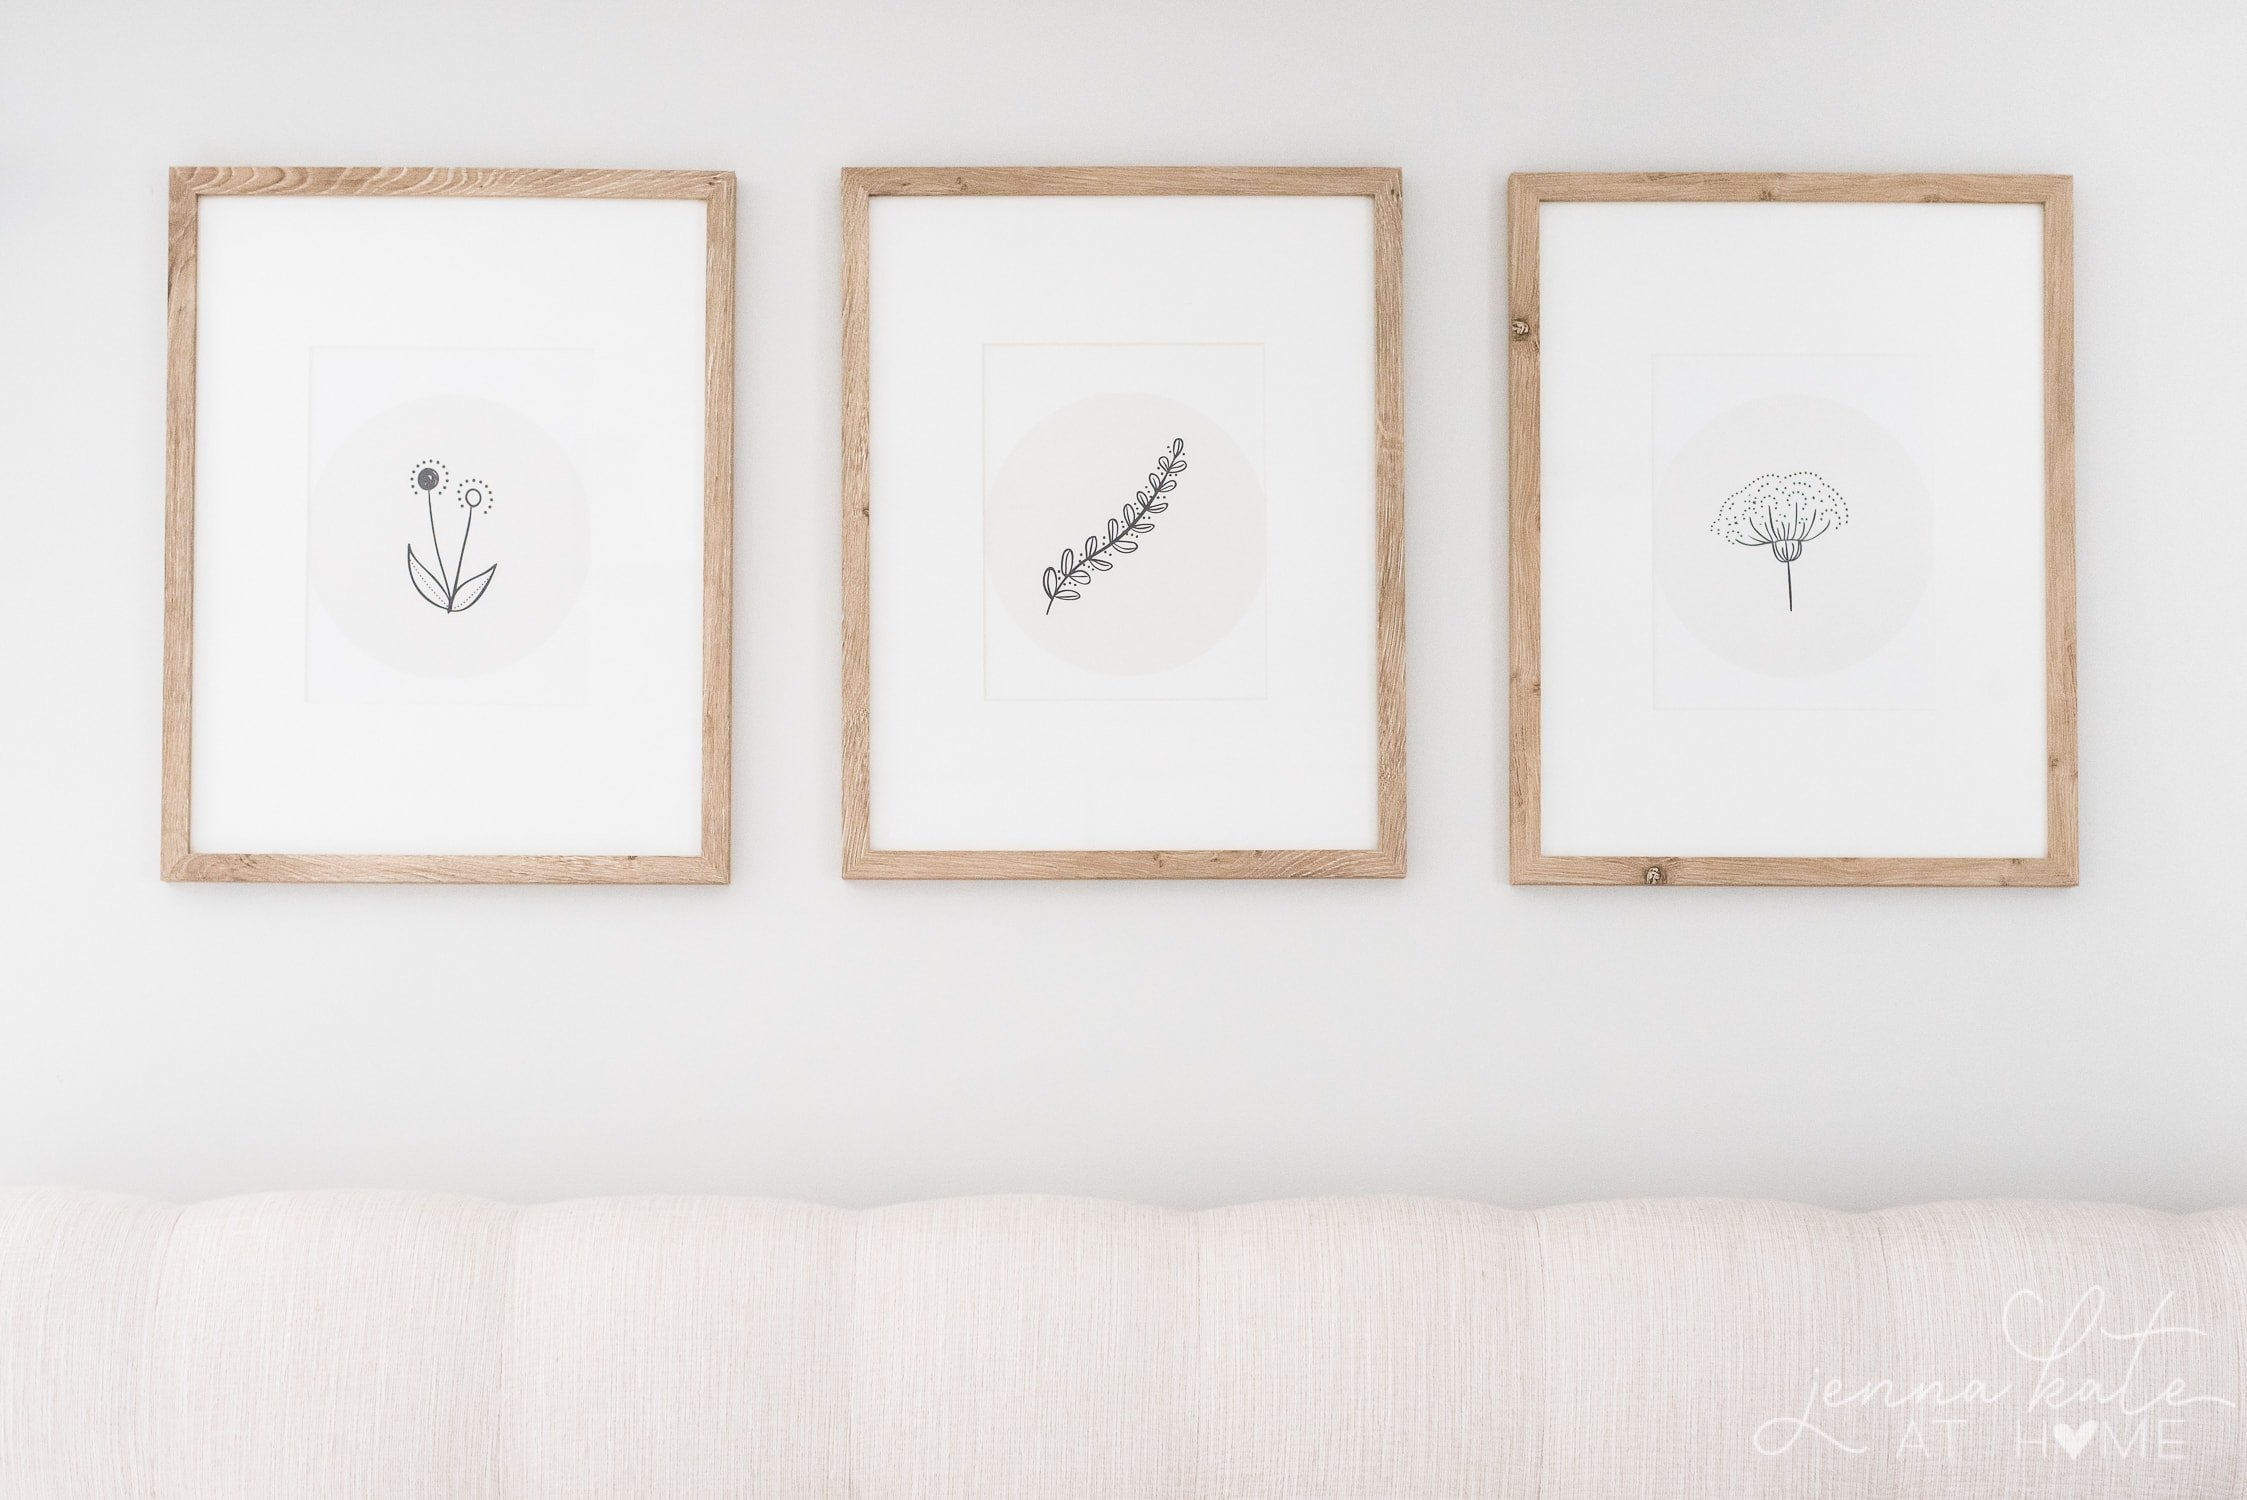 Download these elegant floral sketch prints and frame them in the comfort of your own home. It's a simple way to switch up your decor for a new season! #printable #wallart #homeideas